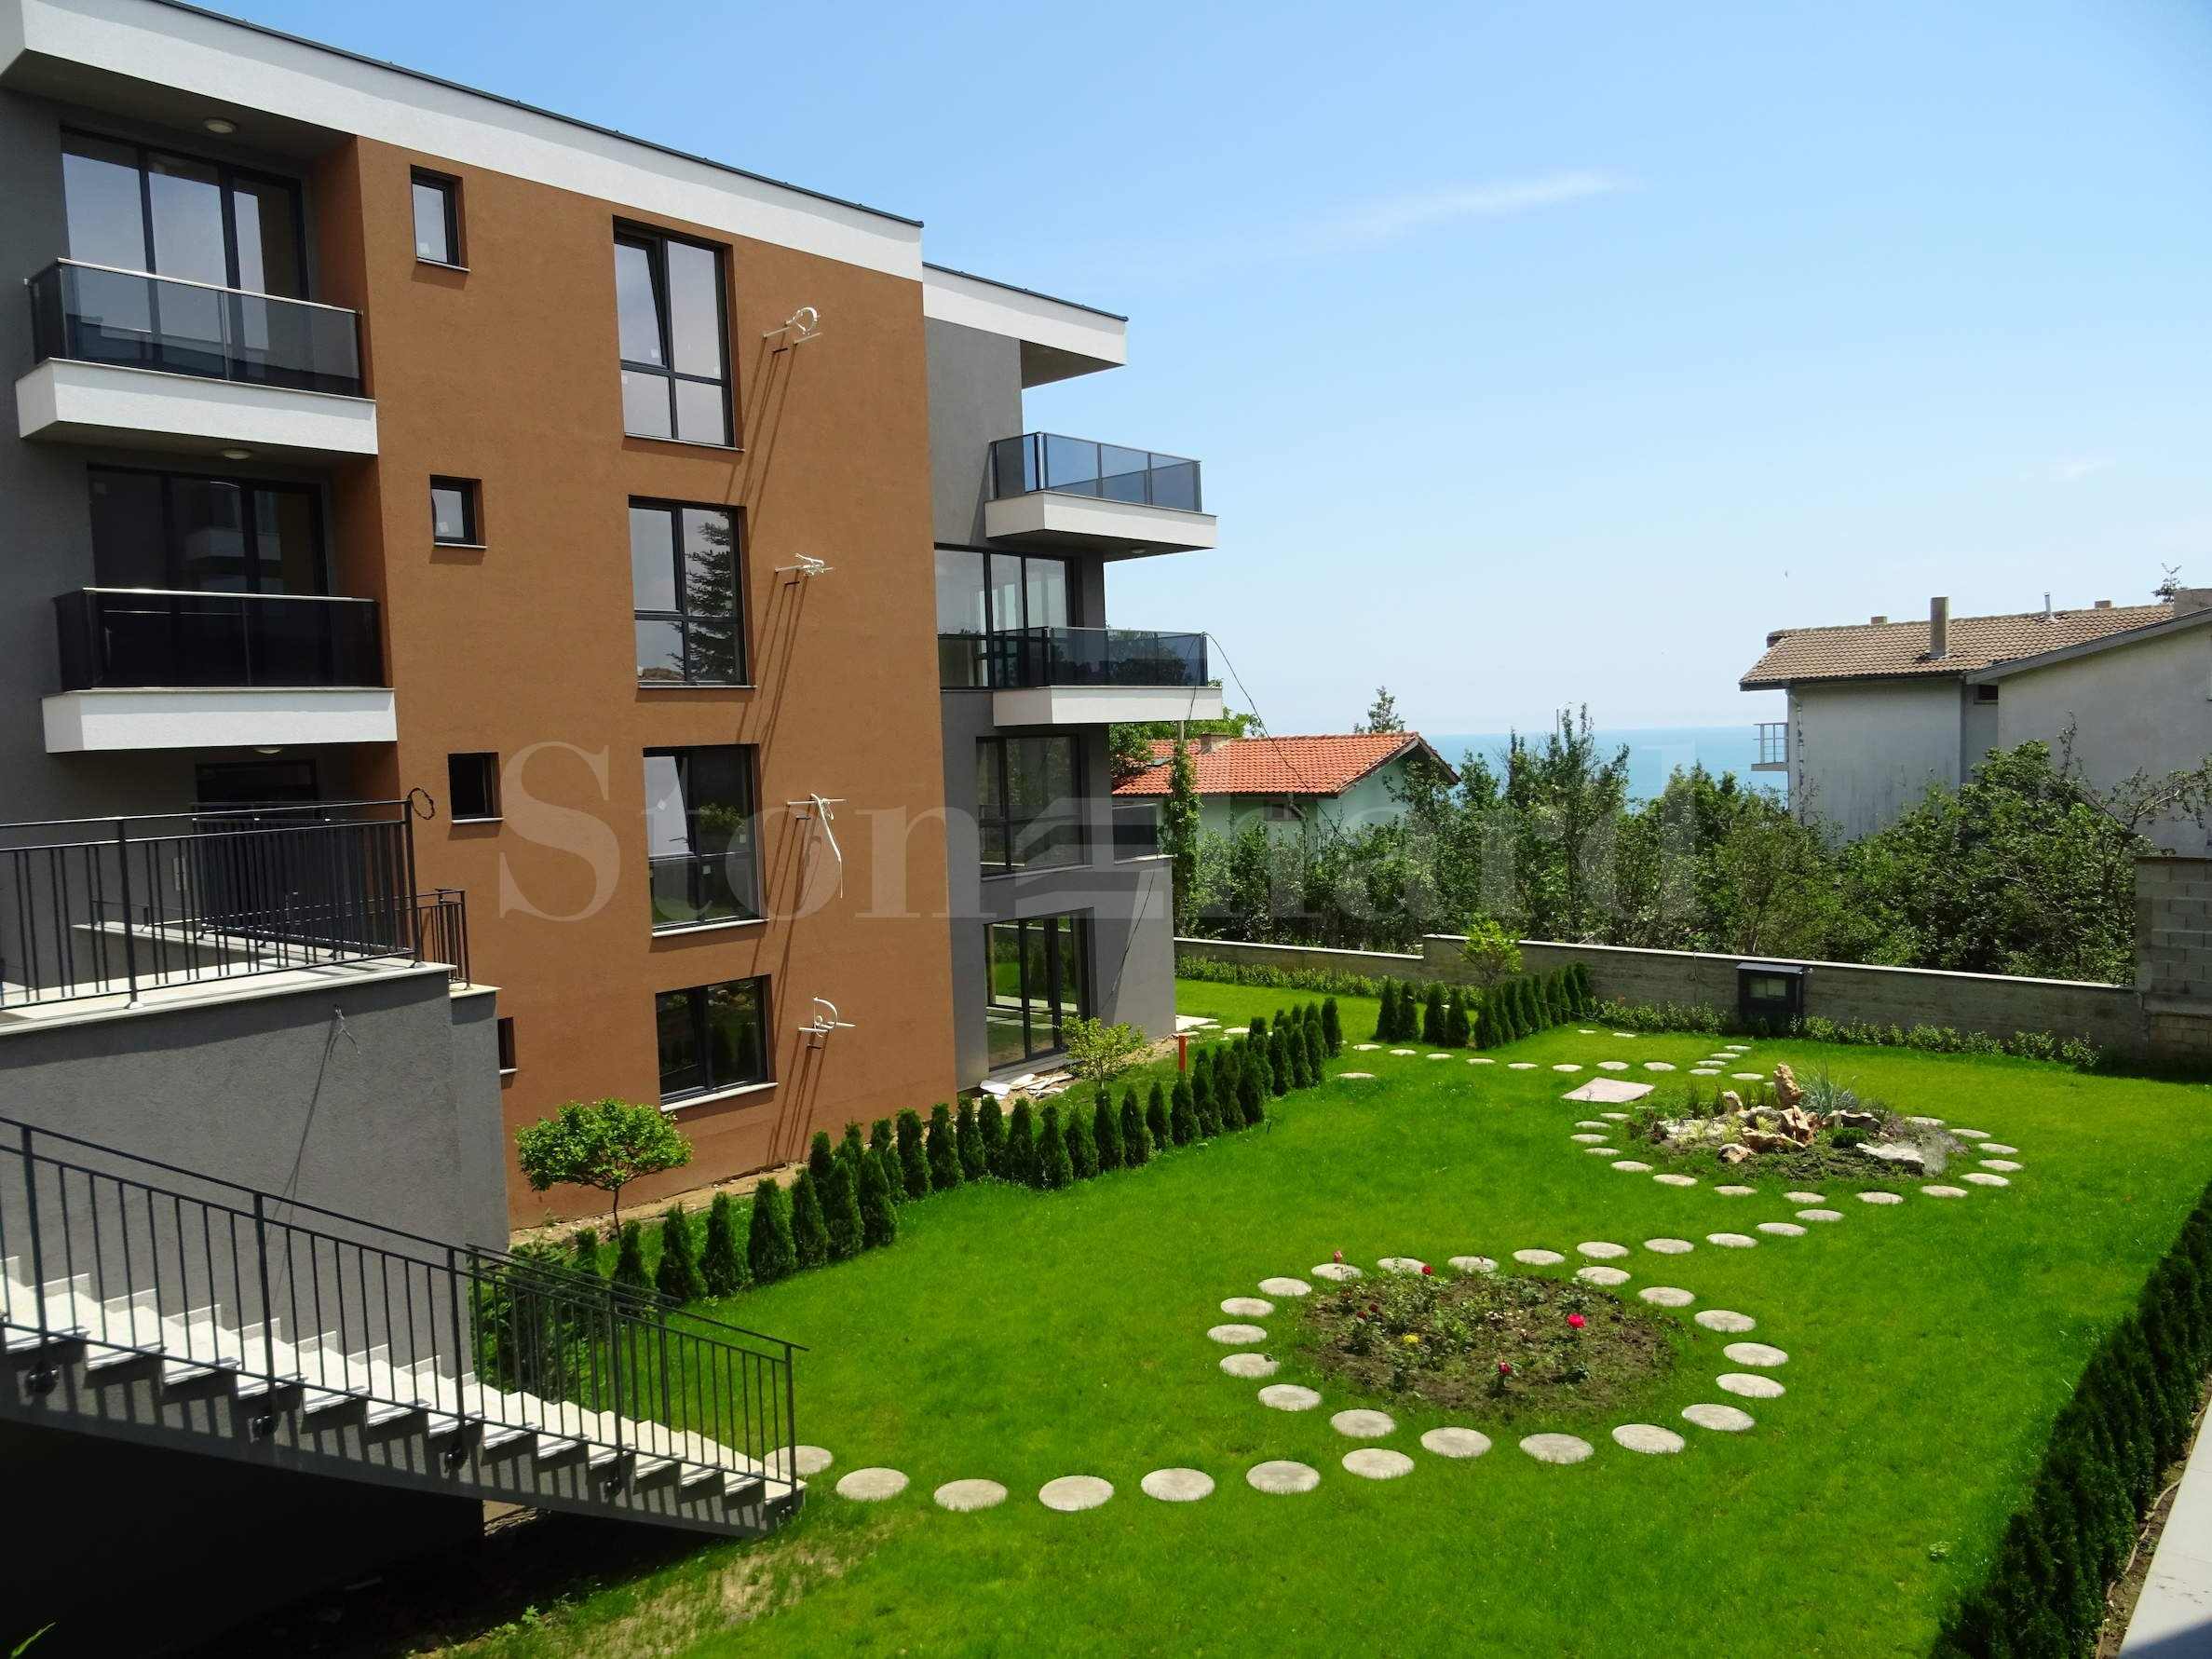 New residential project in Trakata district near Varna, Bulgaria2 - Stonehard